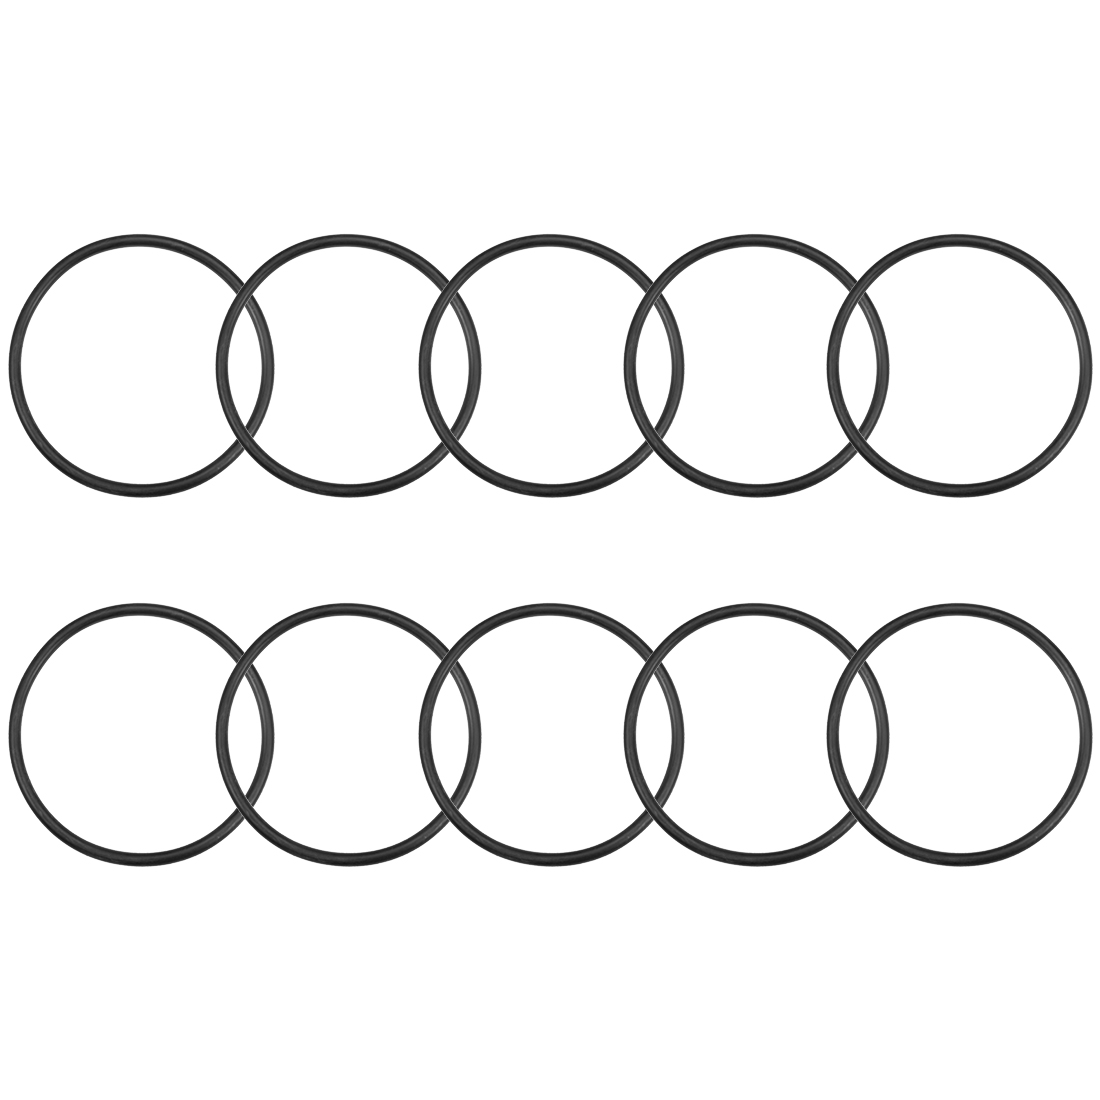 O-Rings Nitrile Rubber 98.6mm x 110mm x 5.7mm Round Seal Gasket 10 Pcs